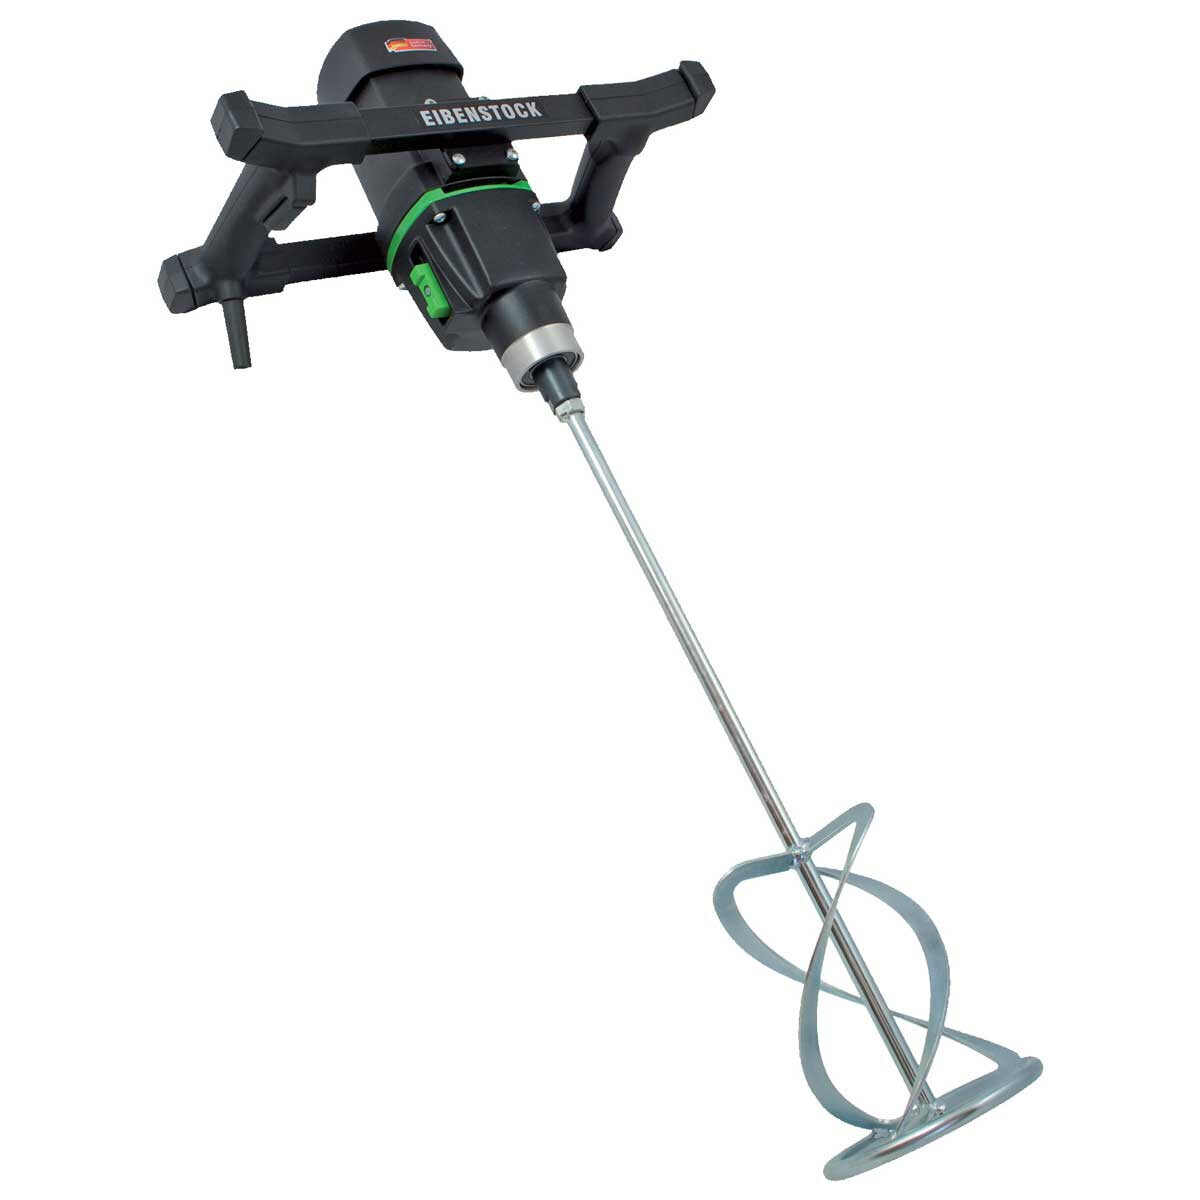 Eibenstock EHR 23/1.4 R is a powerful hand-held mixer designed to stir high viscosity materials such as tile cement, ready-mixed plaster and mortar, epoxy resins, leveling compounds, adhesive sealant